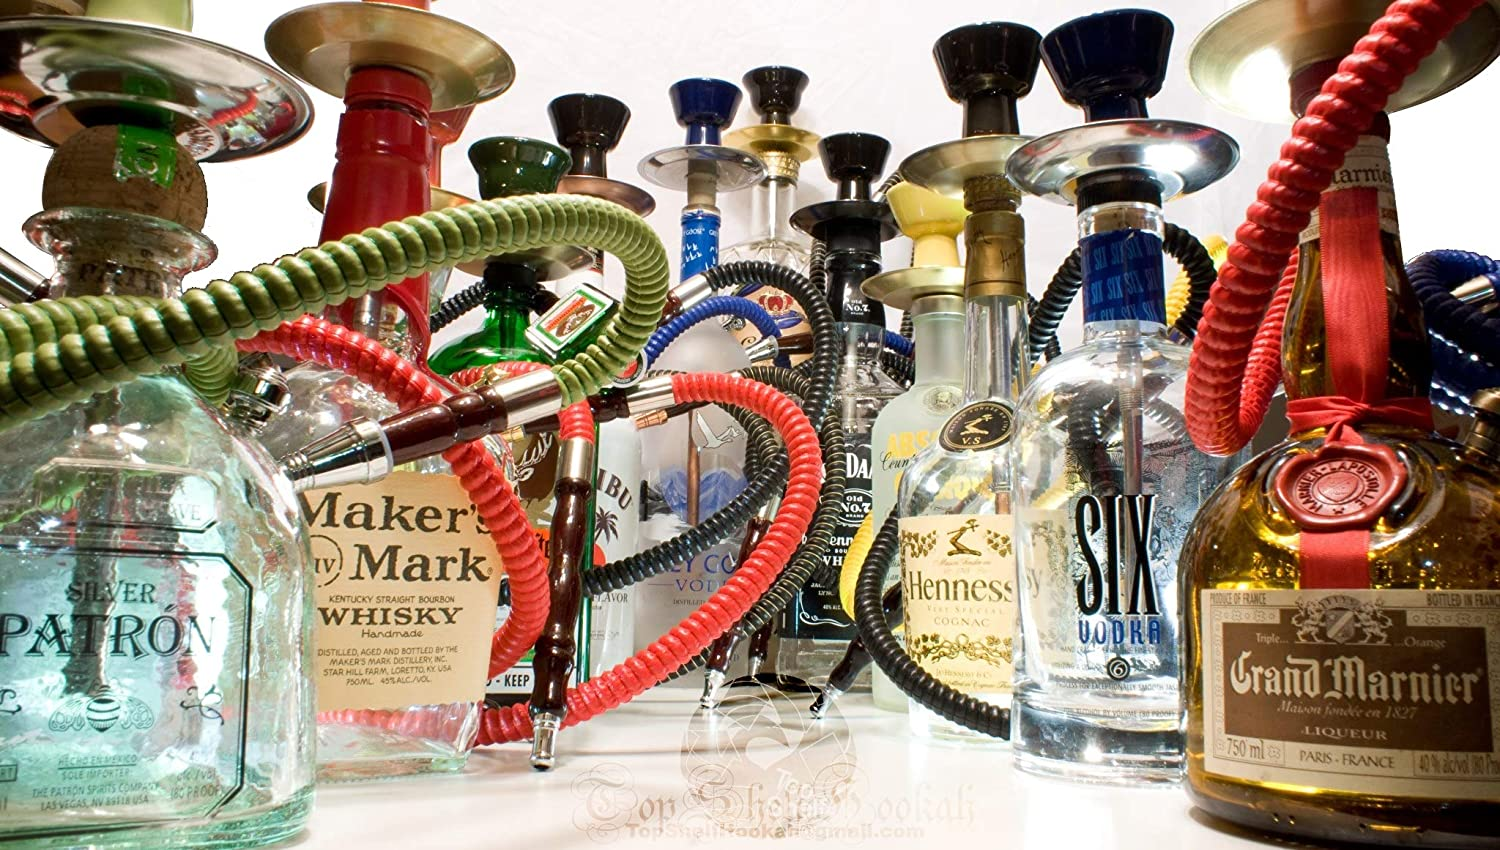 Amazon.com: Patron Silver Tequila Liquor Bottle Hookah 1 Hose 750ml Handcrafted: Health & Personal Care